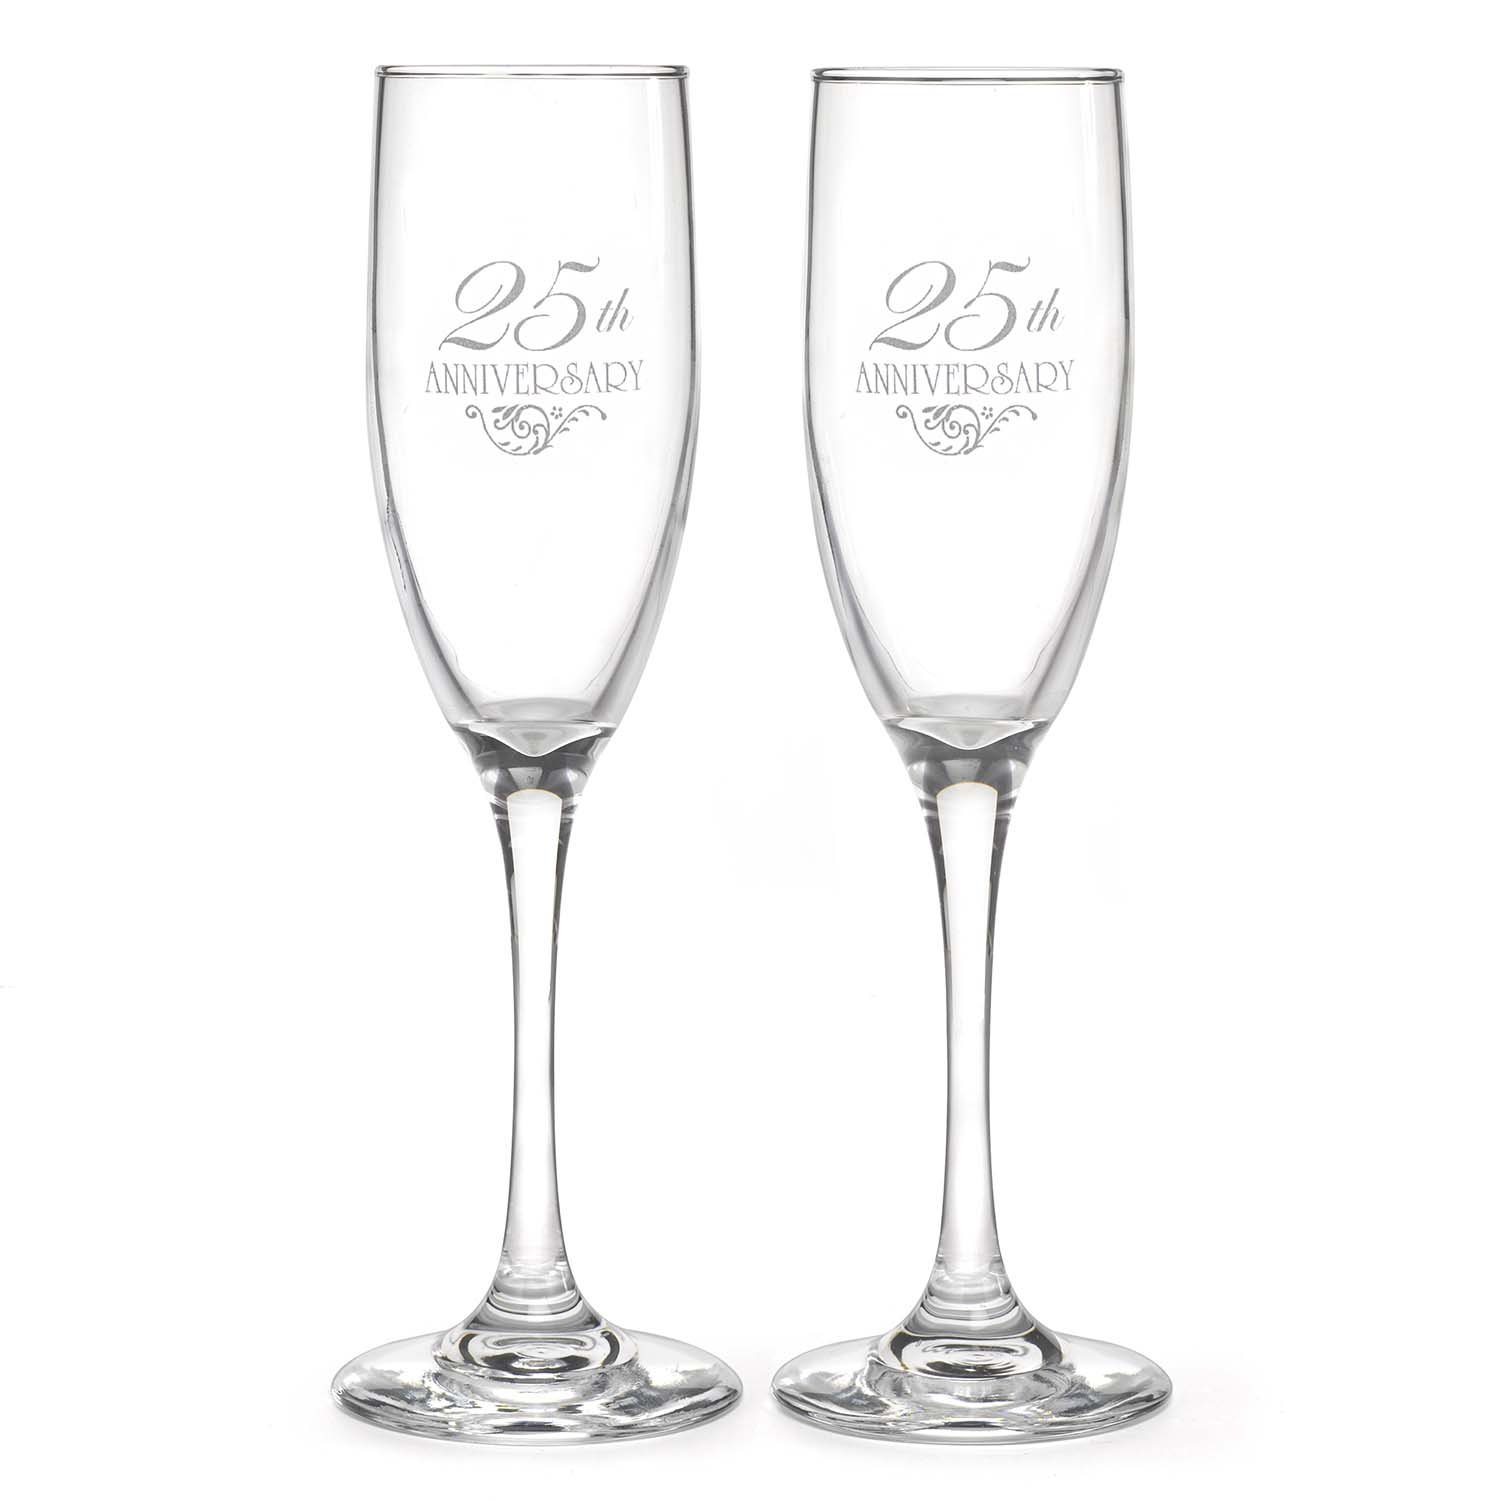 Hortense B. Hewitt Wedding Accessories 25th Anniversary Champagne Toasting Flutes, Set of 2 Sourced Wit 30085